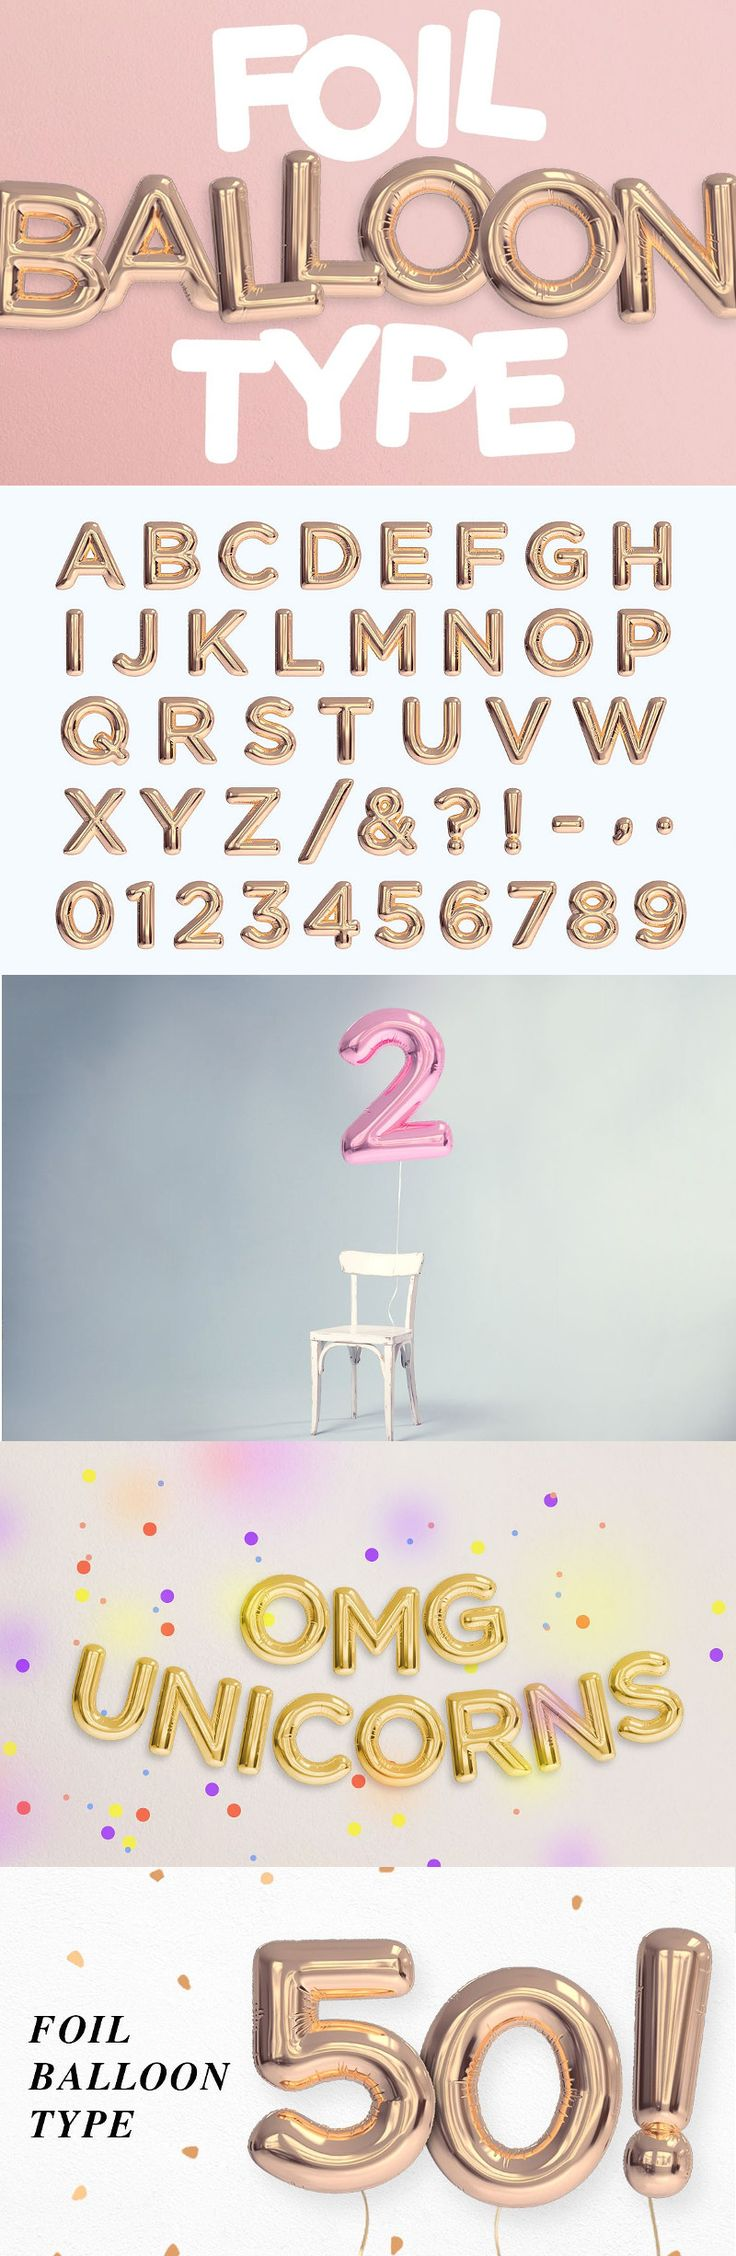 Foil Balloon Type Photoshop template file to help you create realistic foil balloon words.   PSD files of letters, numbers and some special characters.   - Organised layered file  - Separated and movable letters  - Easy drag and drop  Notes:   - This is NOT a font or a vector file.  - File contains the alphabet layout with dimensions of 6945w x 4911h pixels. Each letter is approx 750x750px @ 300 dpi. Adjust colour and level of type through adjustment layers.  (Aff Link)